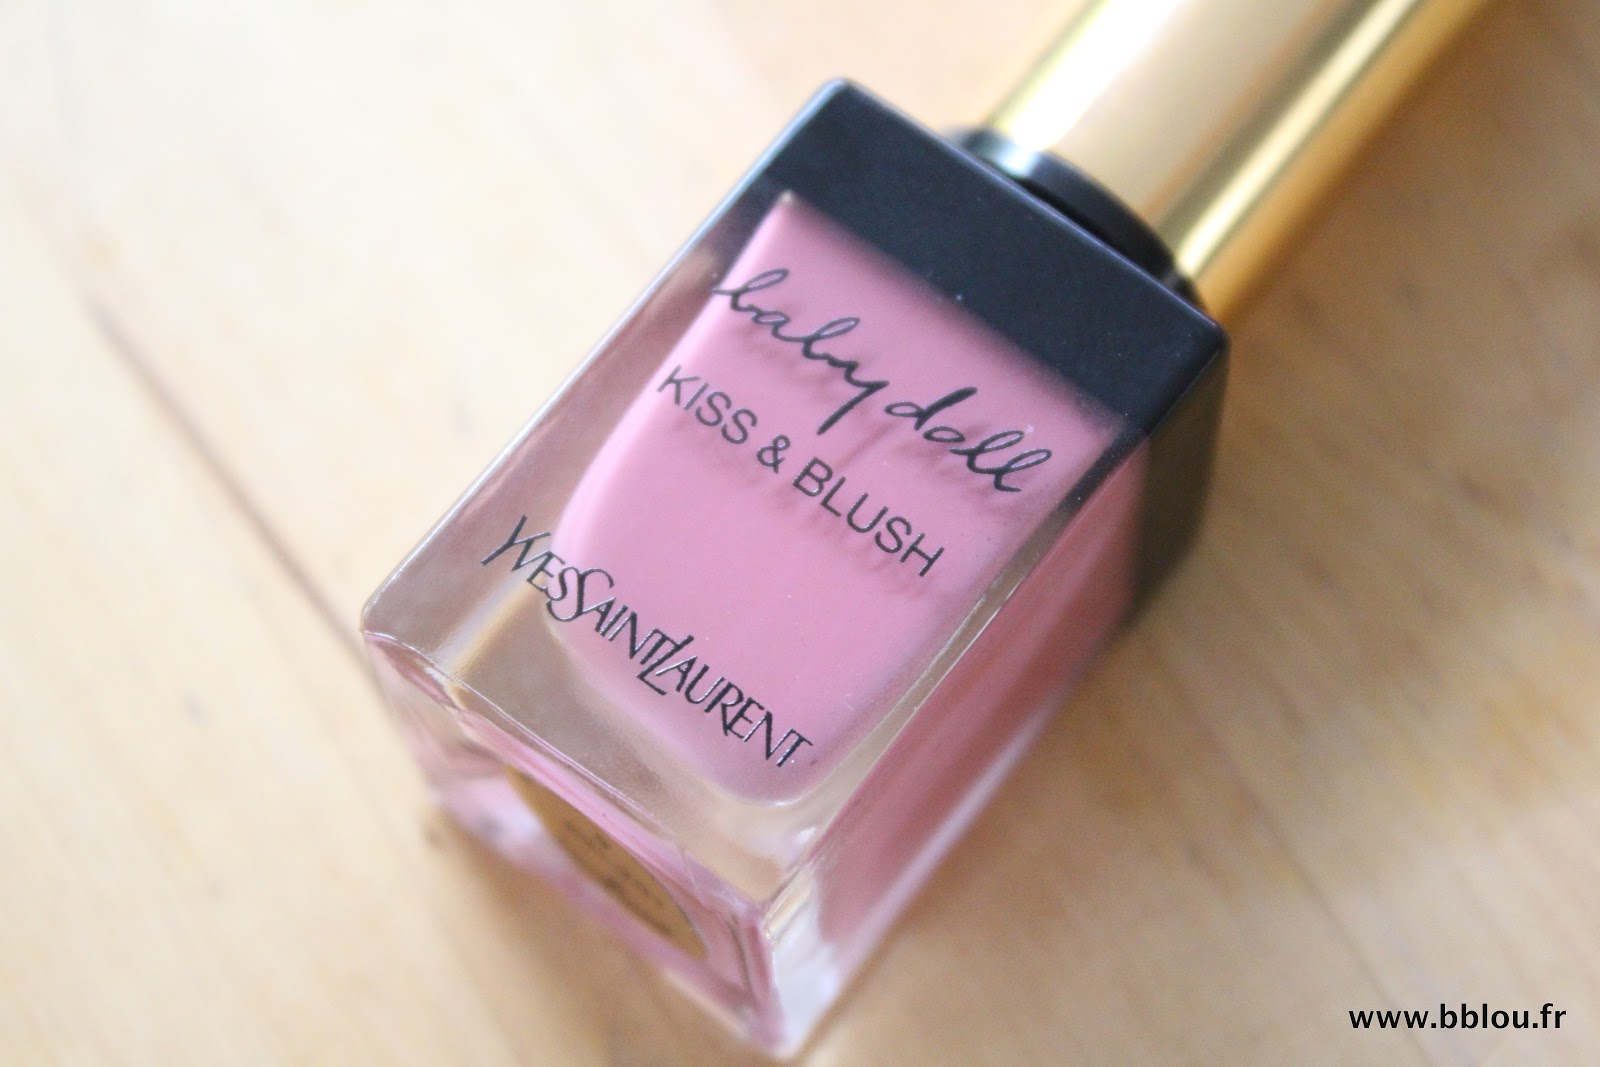 http://www.beautybylou.com/2014/05/yves-saint-laurent-kiss-blush-la.html